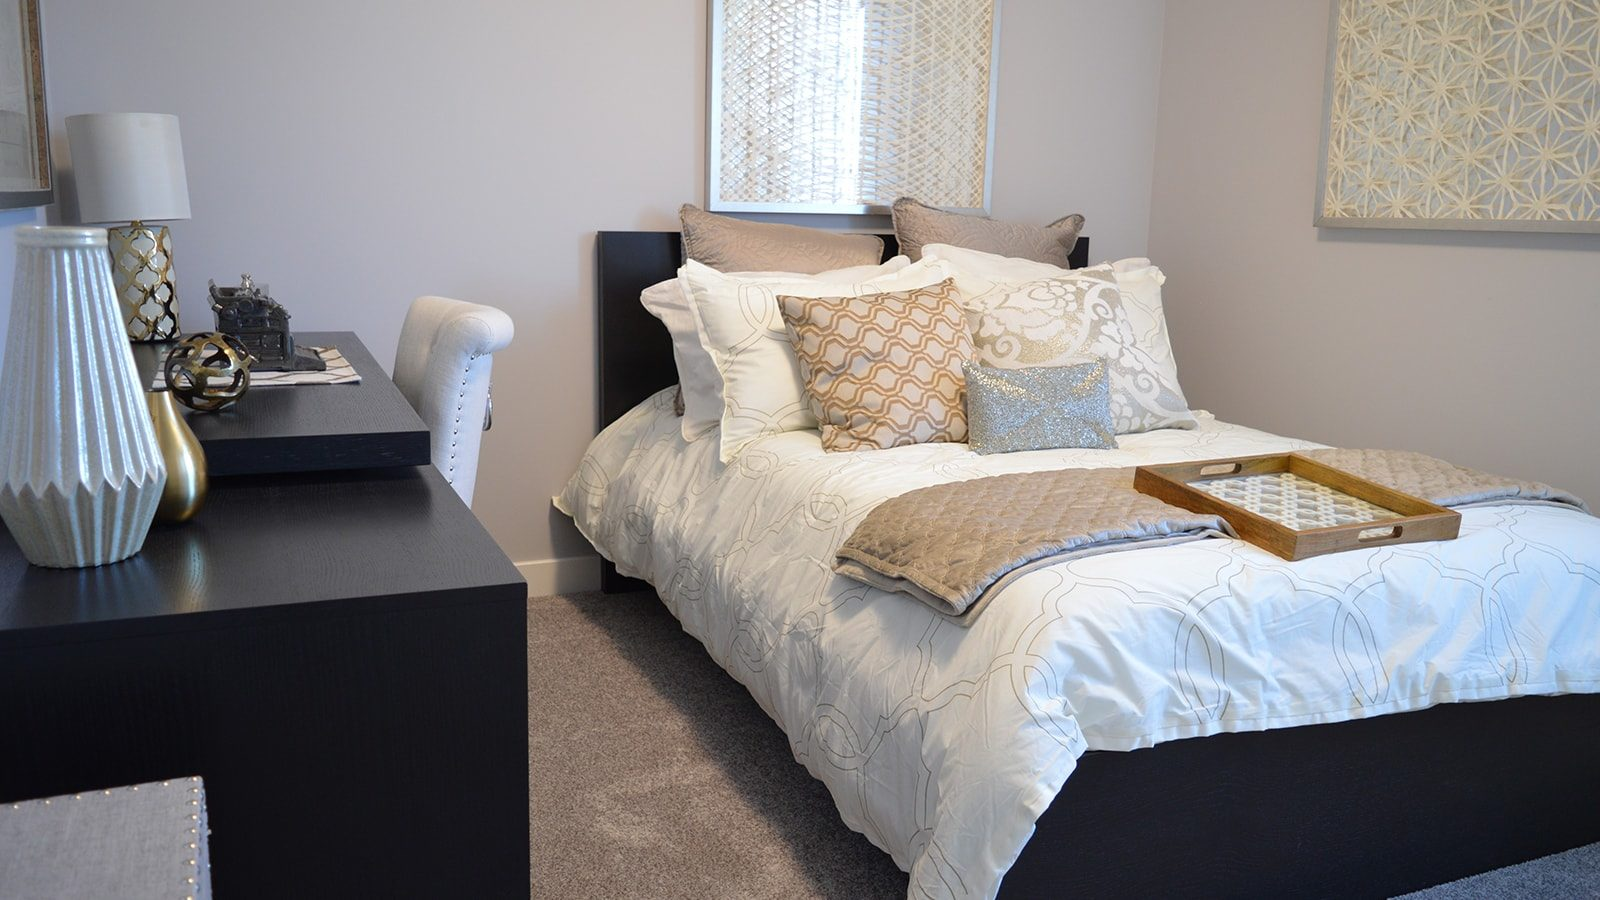 10 Bedding Designs That Works Superb Accent In the Bedroom